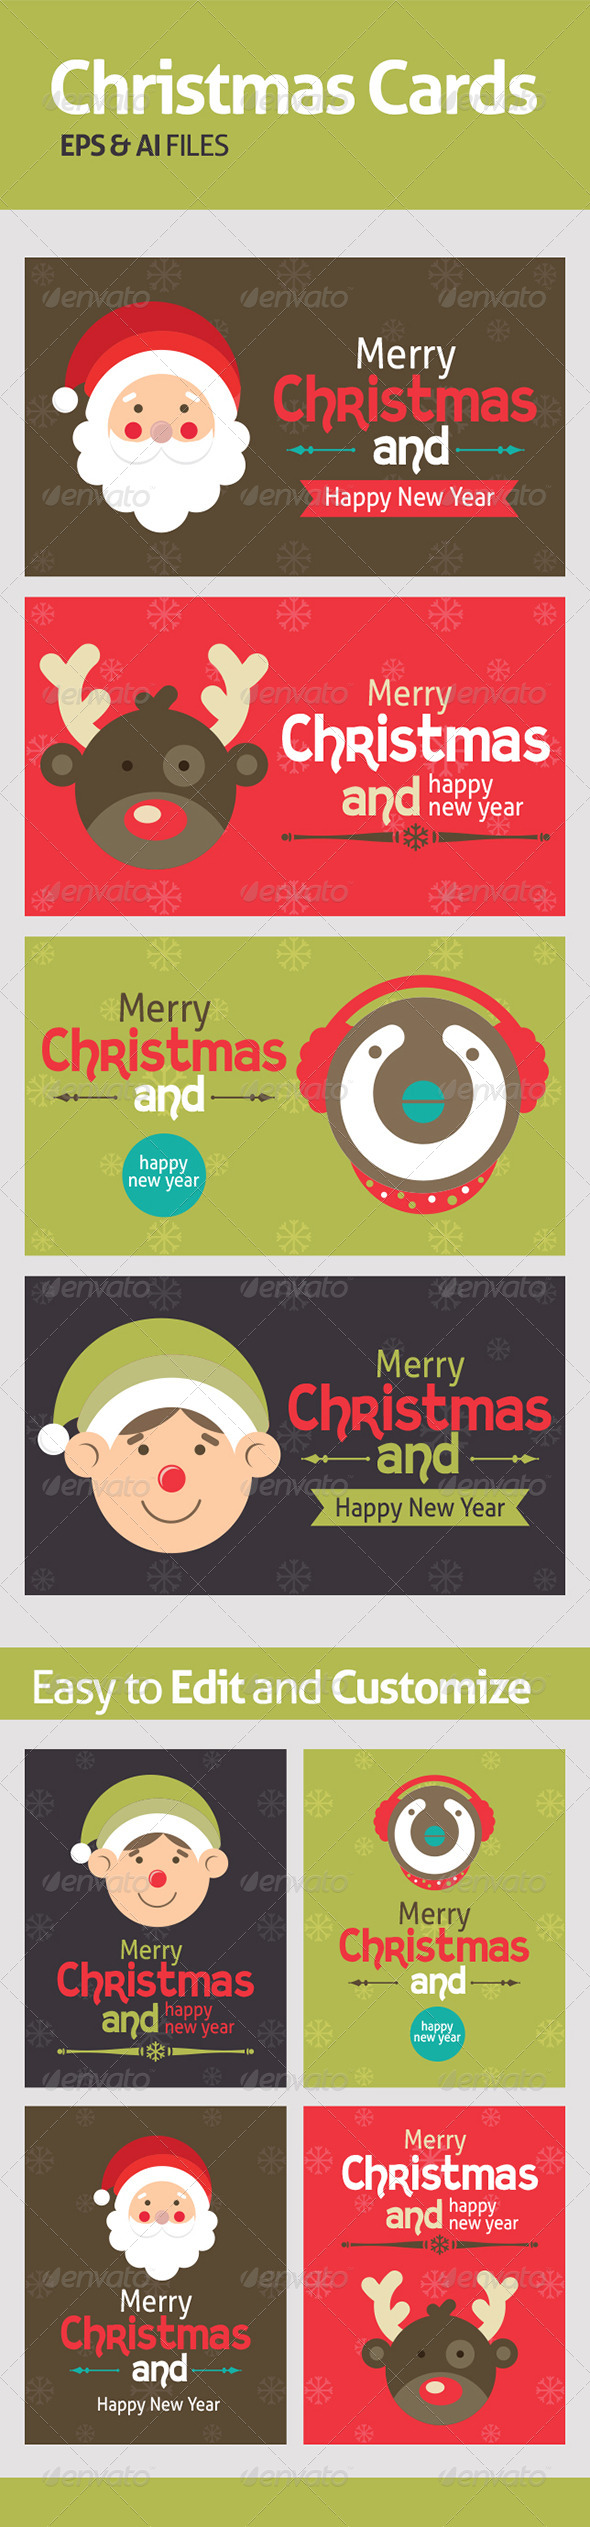 GraphicRiver Vectors for Chrismas Cards 6254831